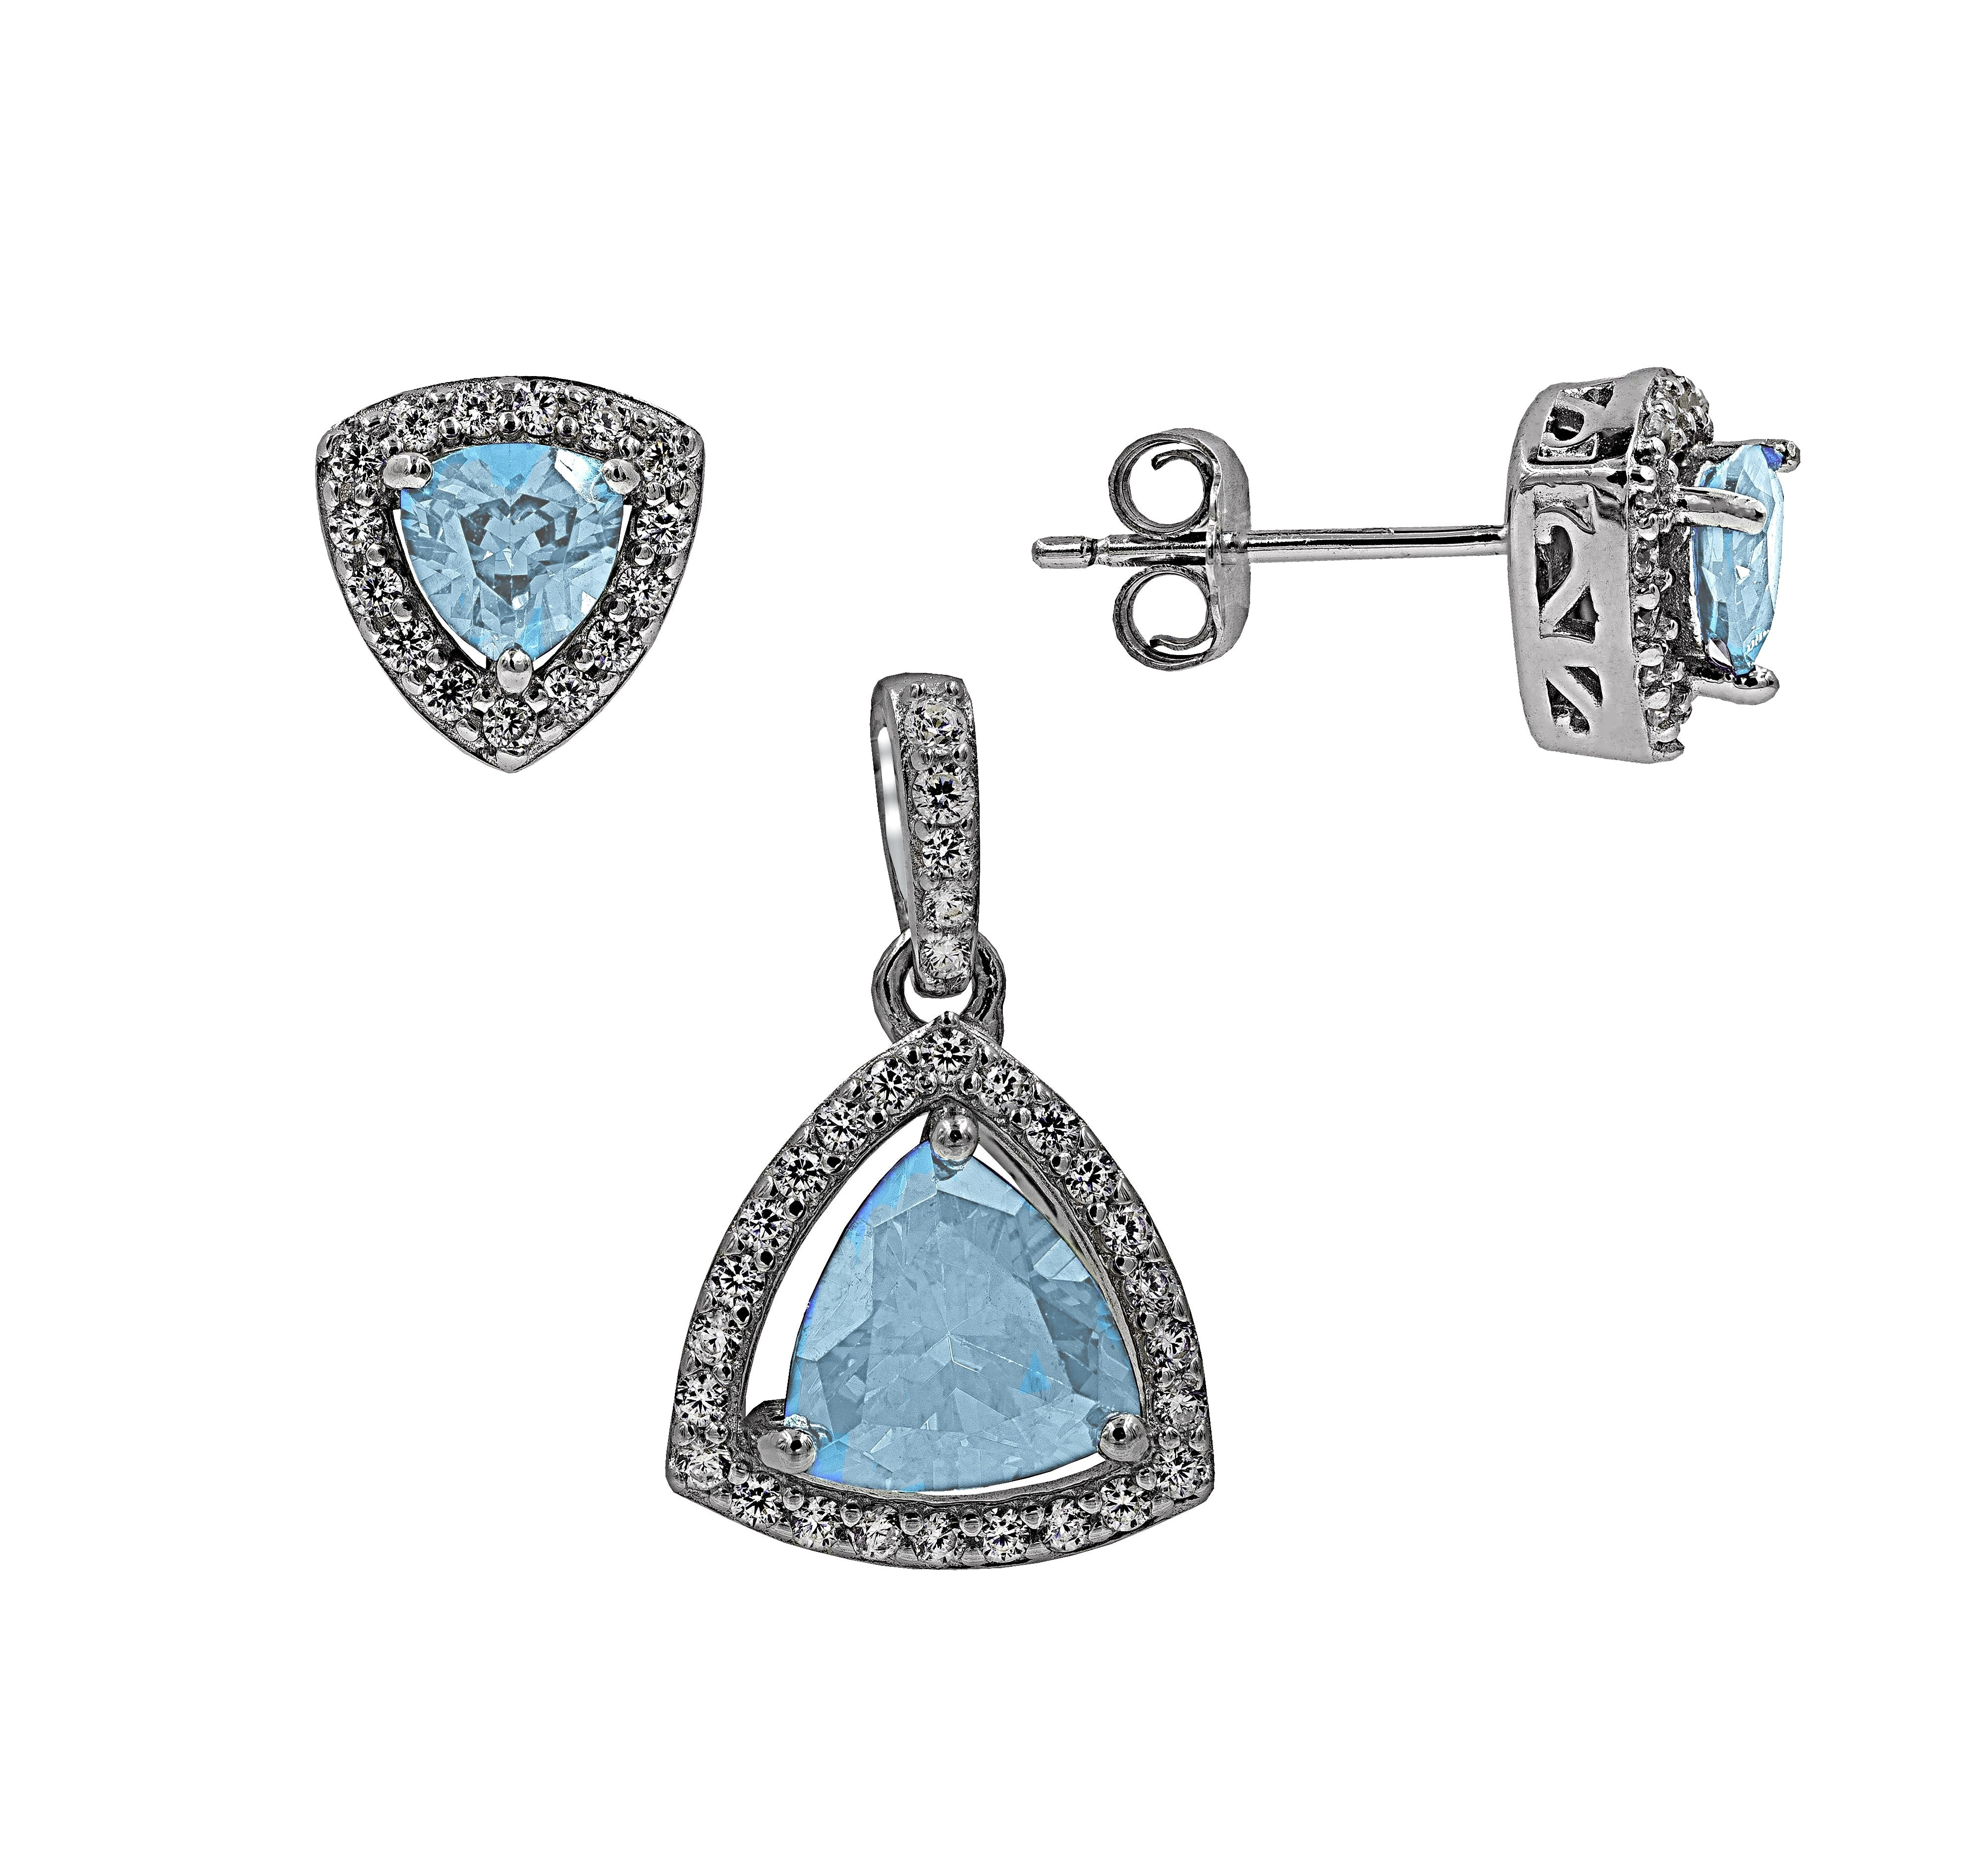 ZDS2101-A STERLING SILVER 925 RHODIUM PLATED FINISN AQUA CUBIC ZIRCONIA SET